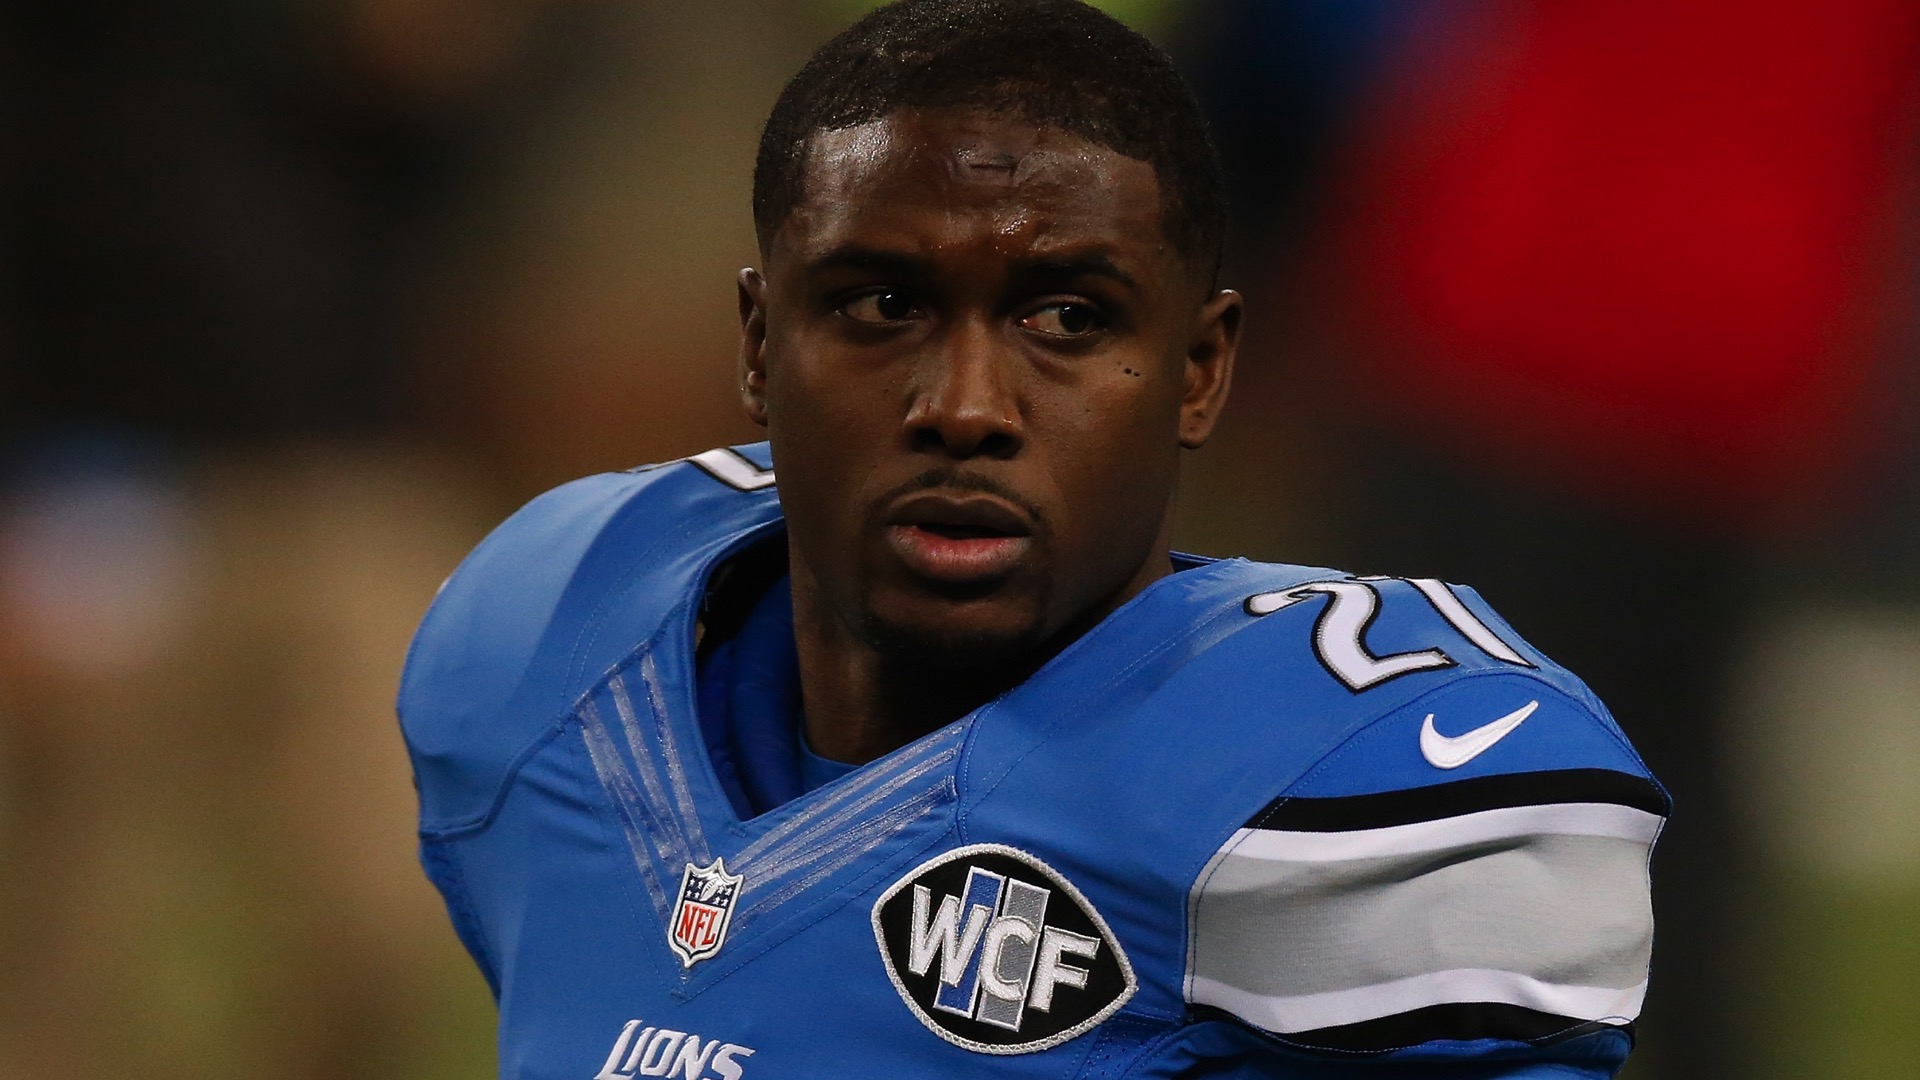 Reggie Bush wants to return punts for 49ers